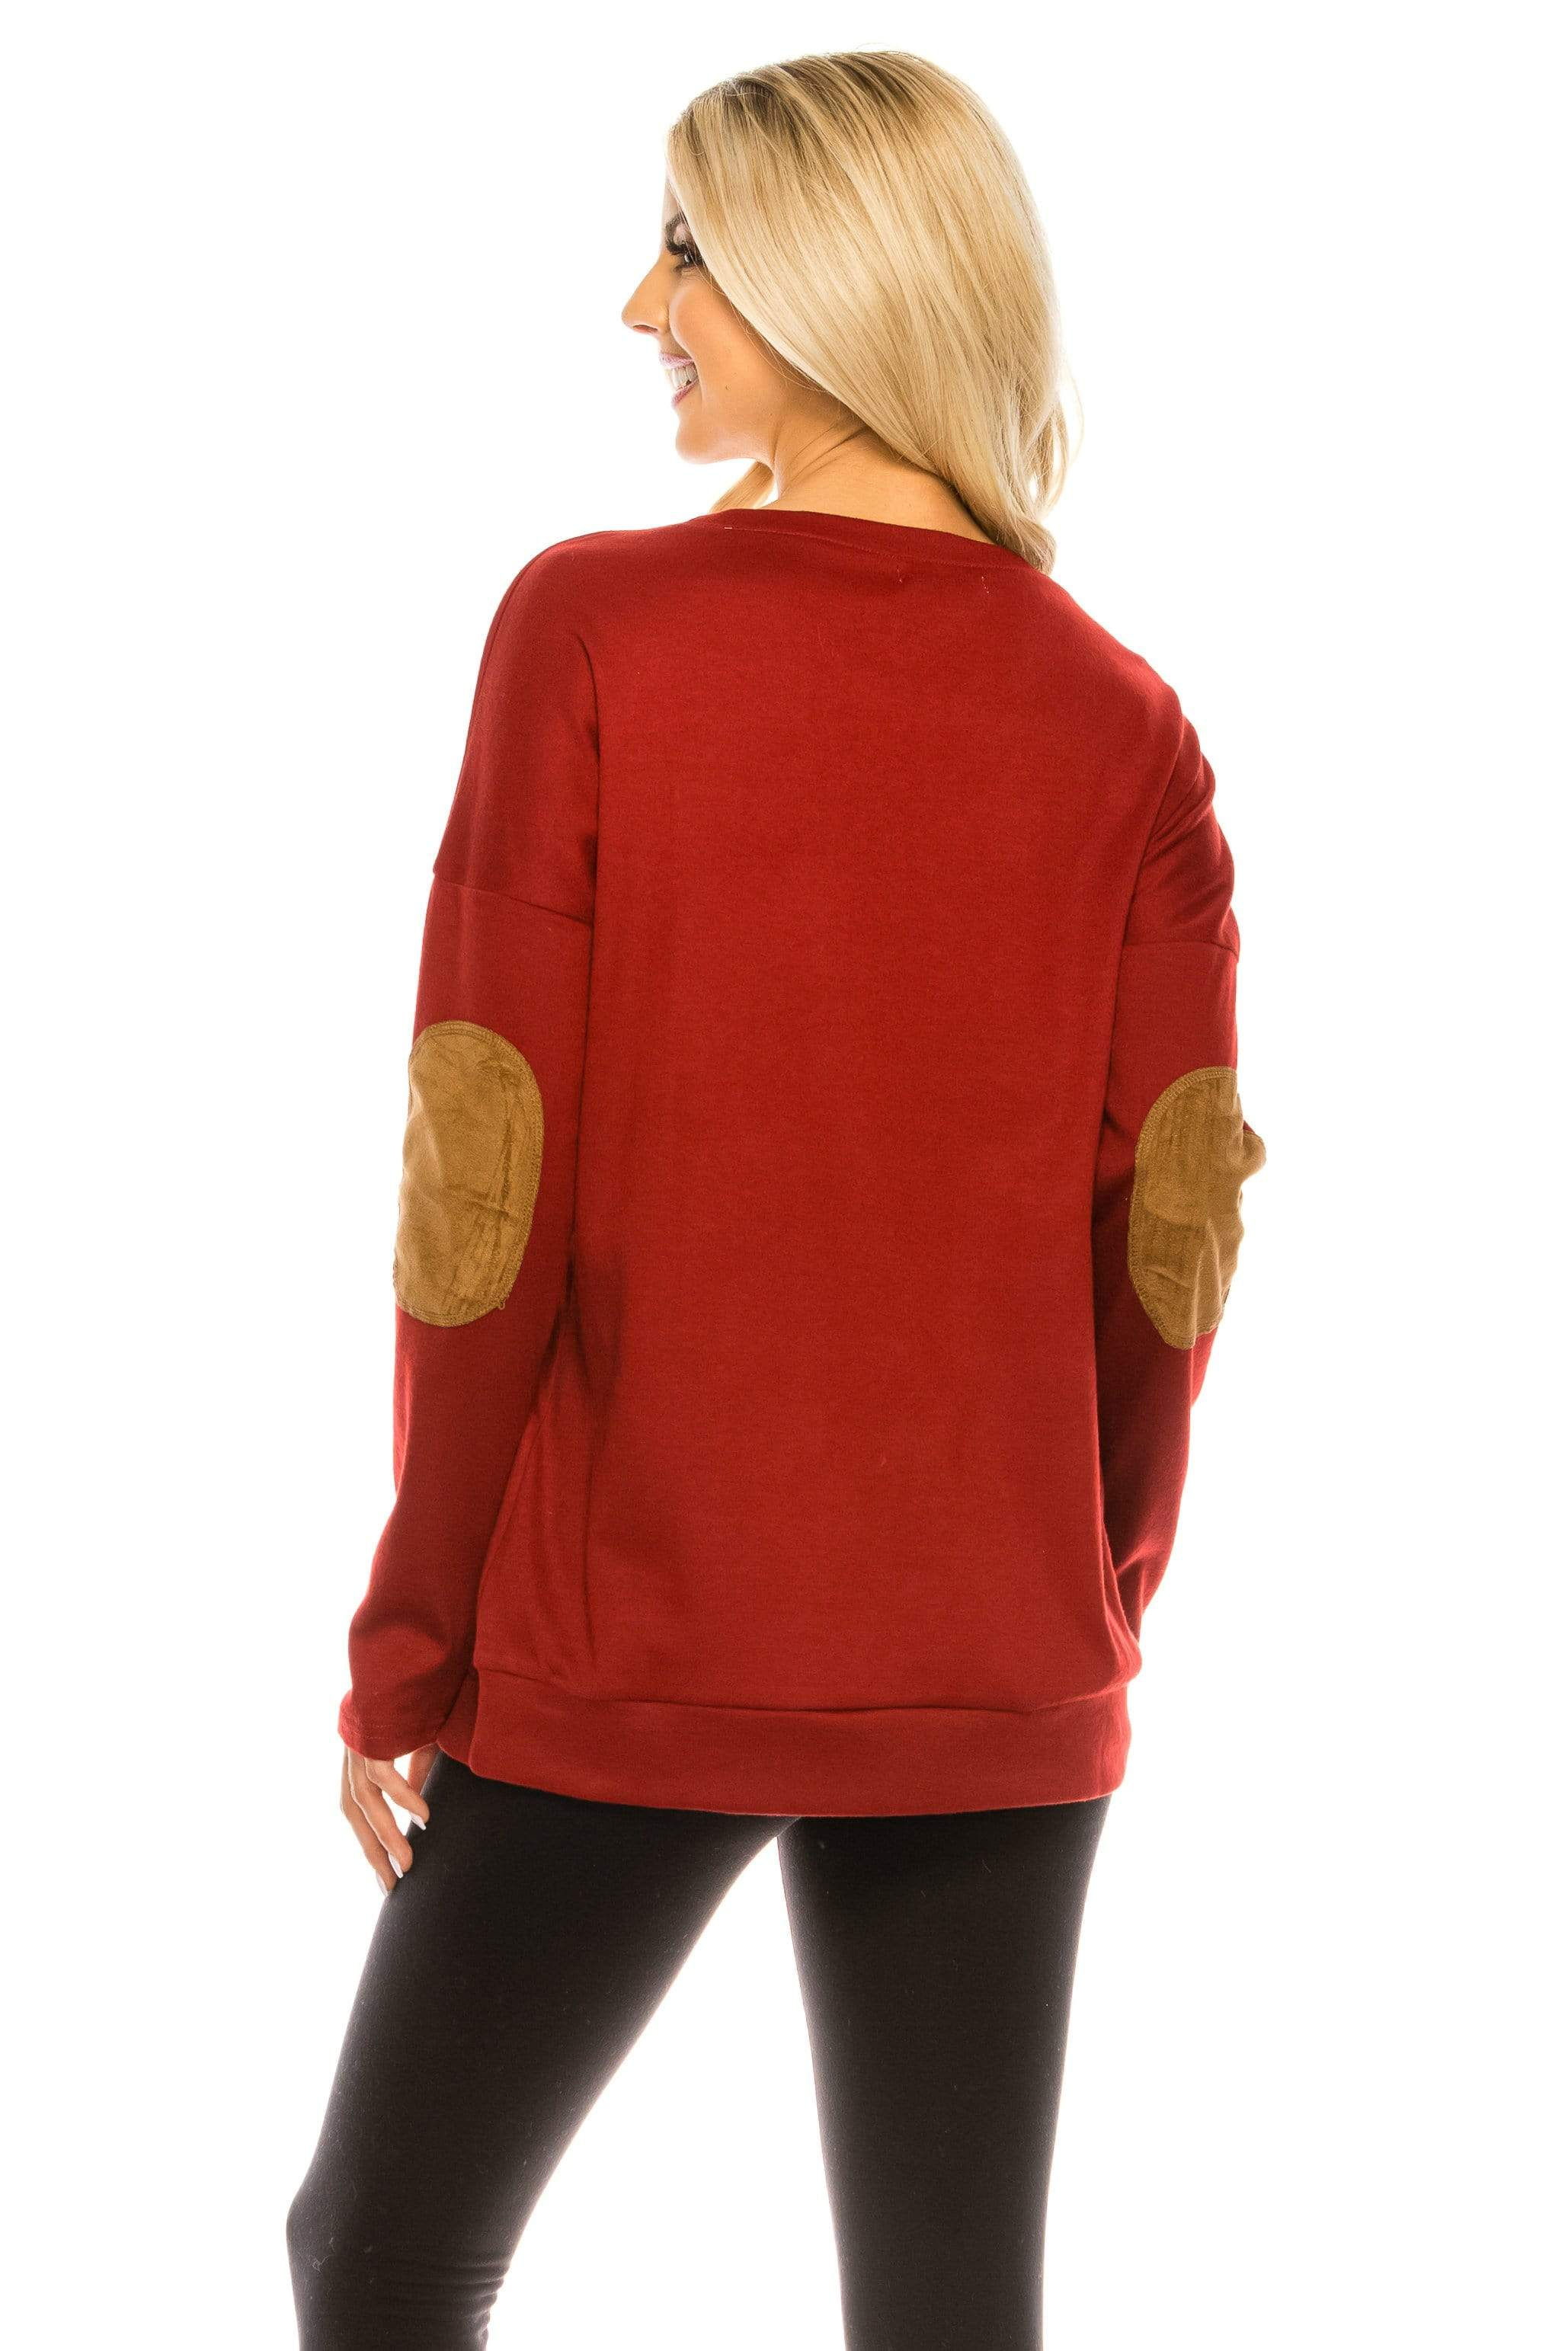 Haute Edition WOMEN'S TOP Haute Edition Women's Thanksgiving Tunic Elbow Patch Graphic Tees